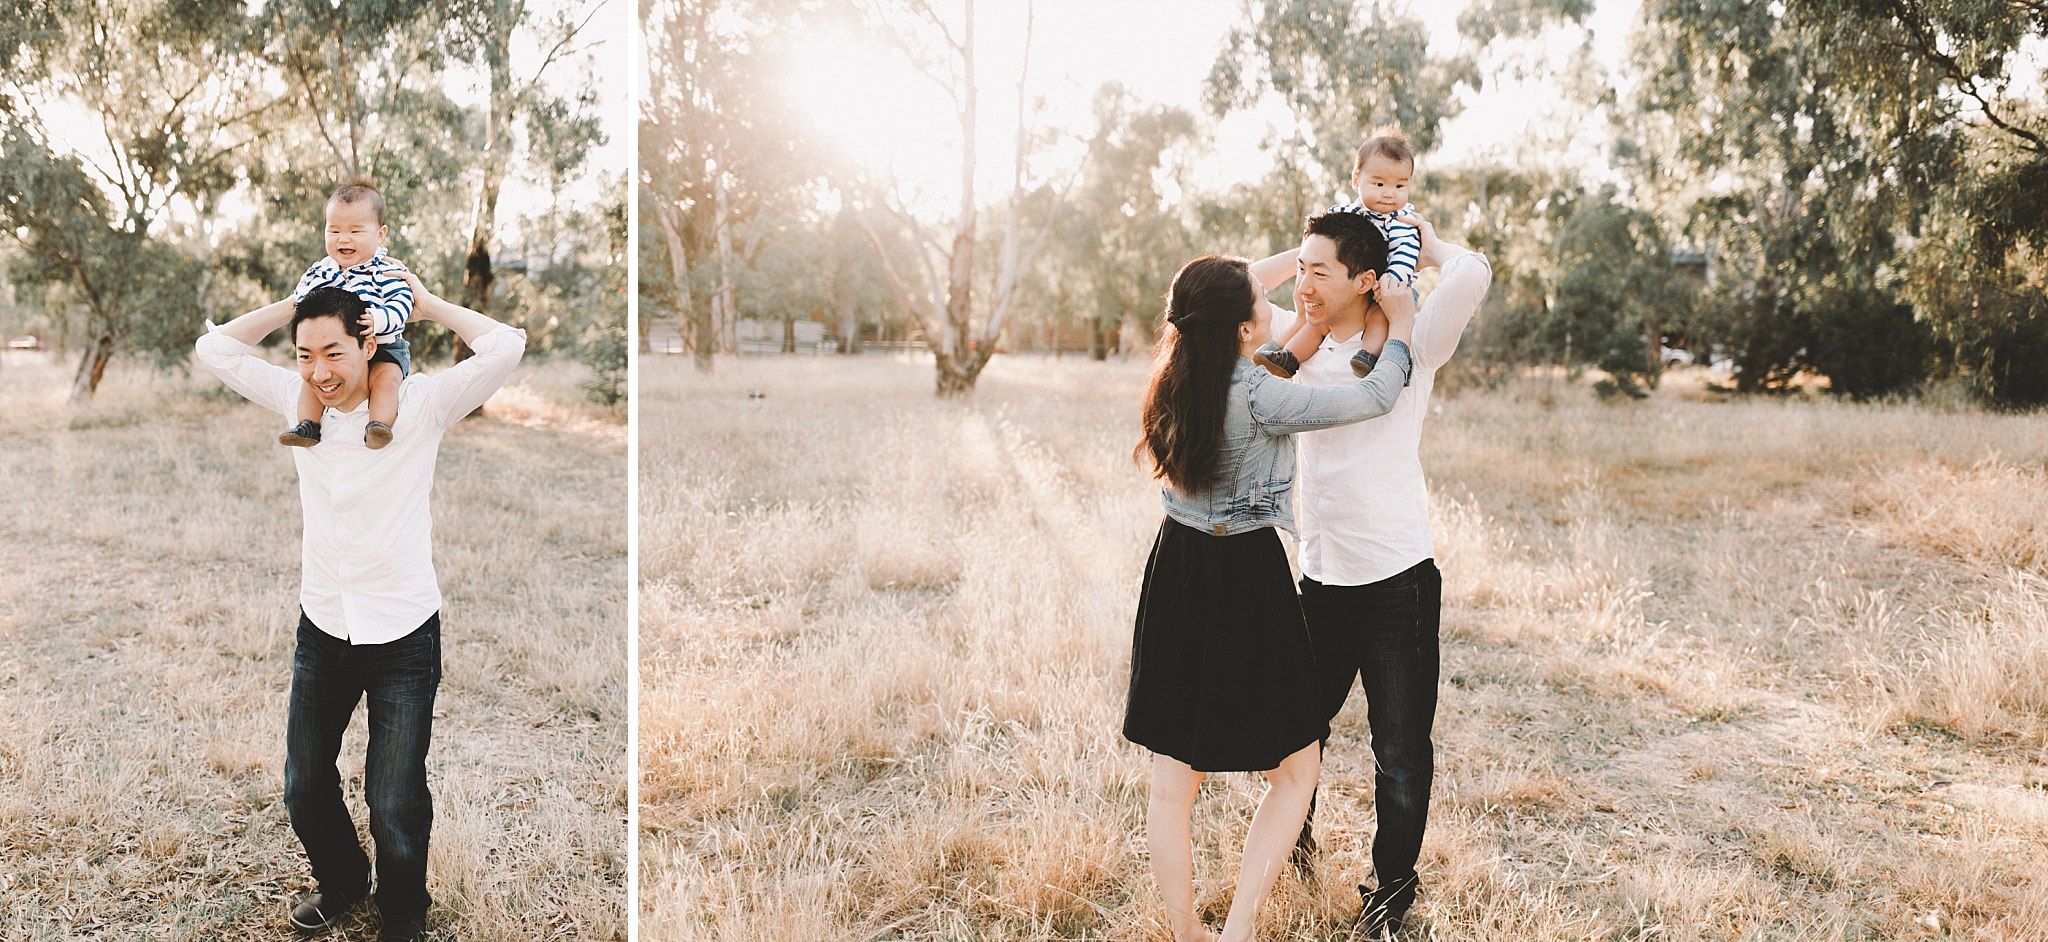 Royal Park Melbourne Family natural lifestyle Photographer_0267.jpg